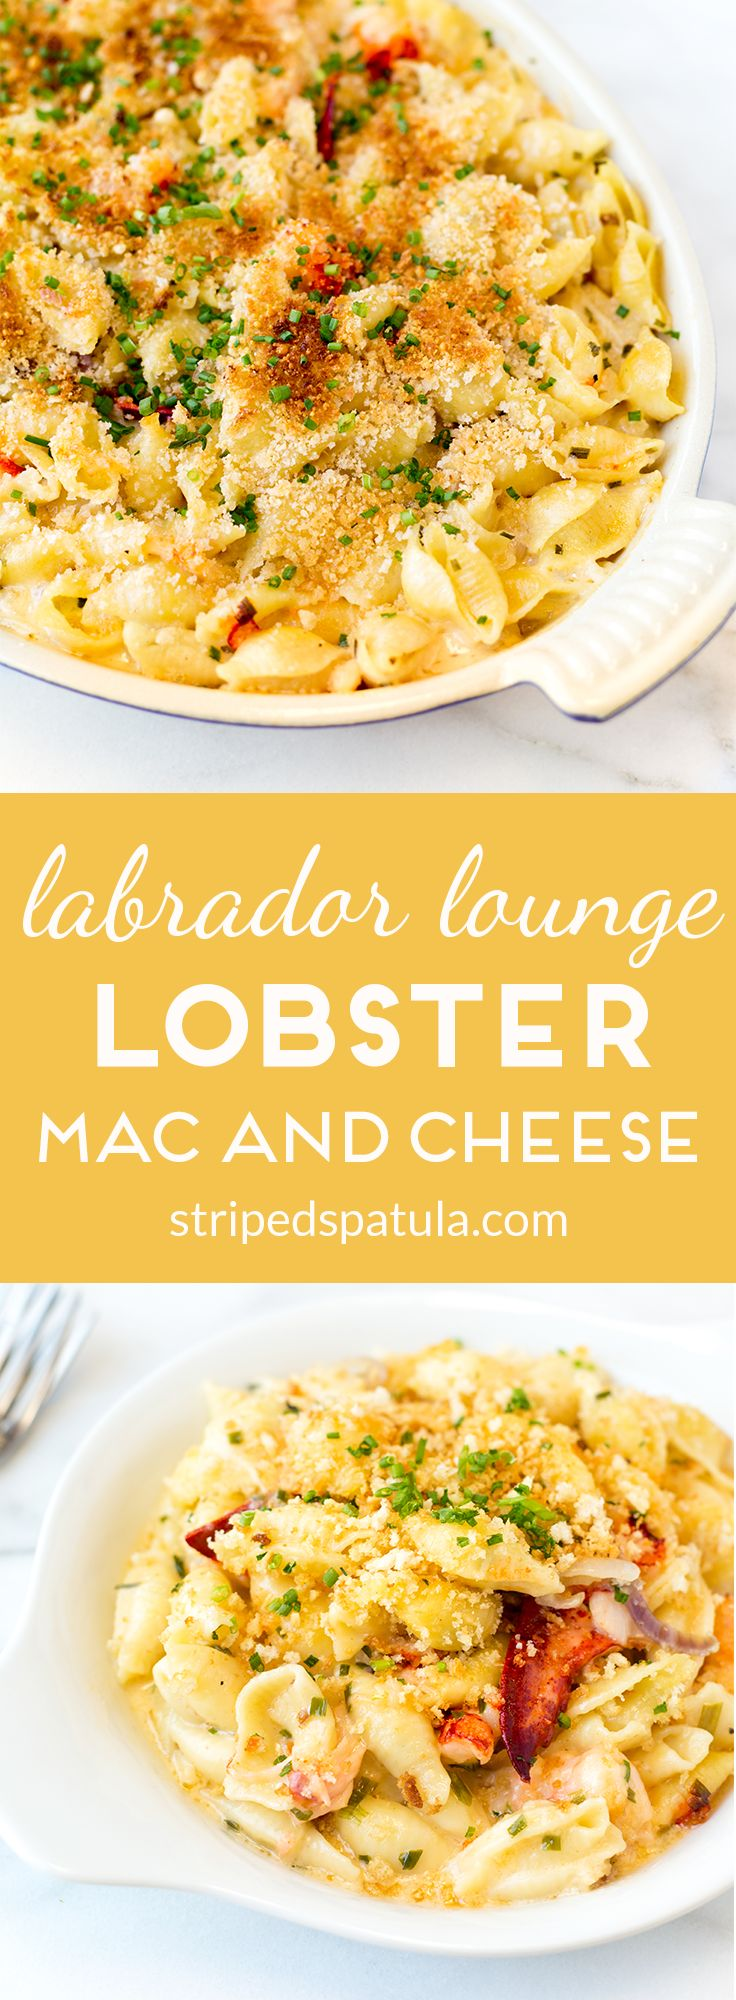 [sponsored] The recipe for rich and creamy Lobster Mac and Cheese from Labrador Lounge in Normandy Beach, NJ (via The Jersey Shore Cookbook)